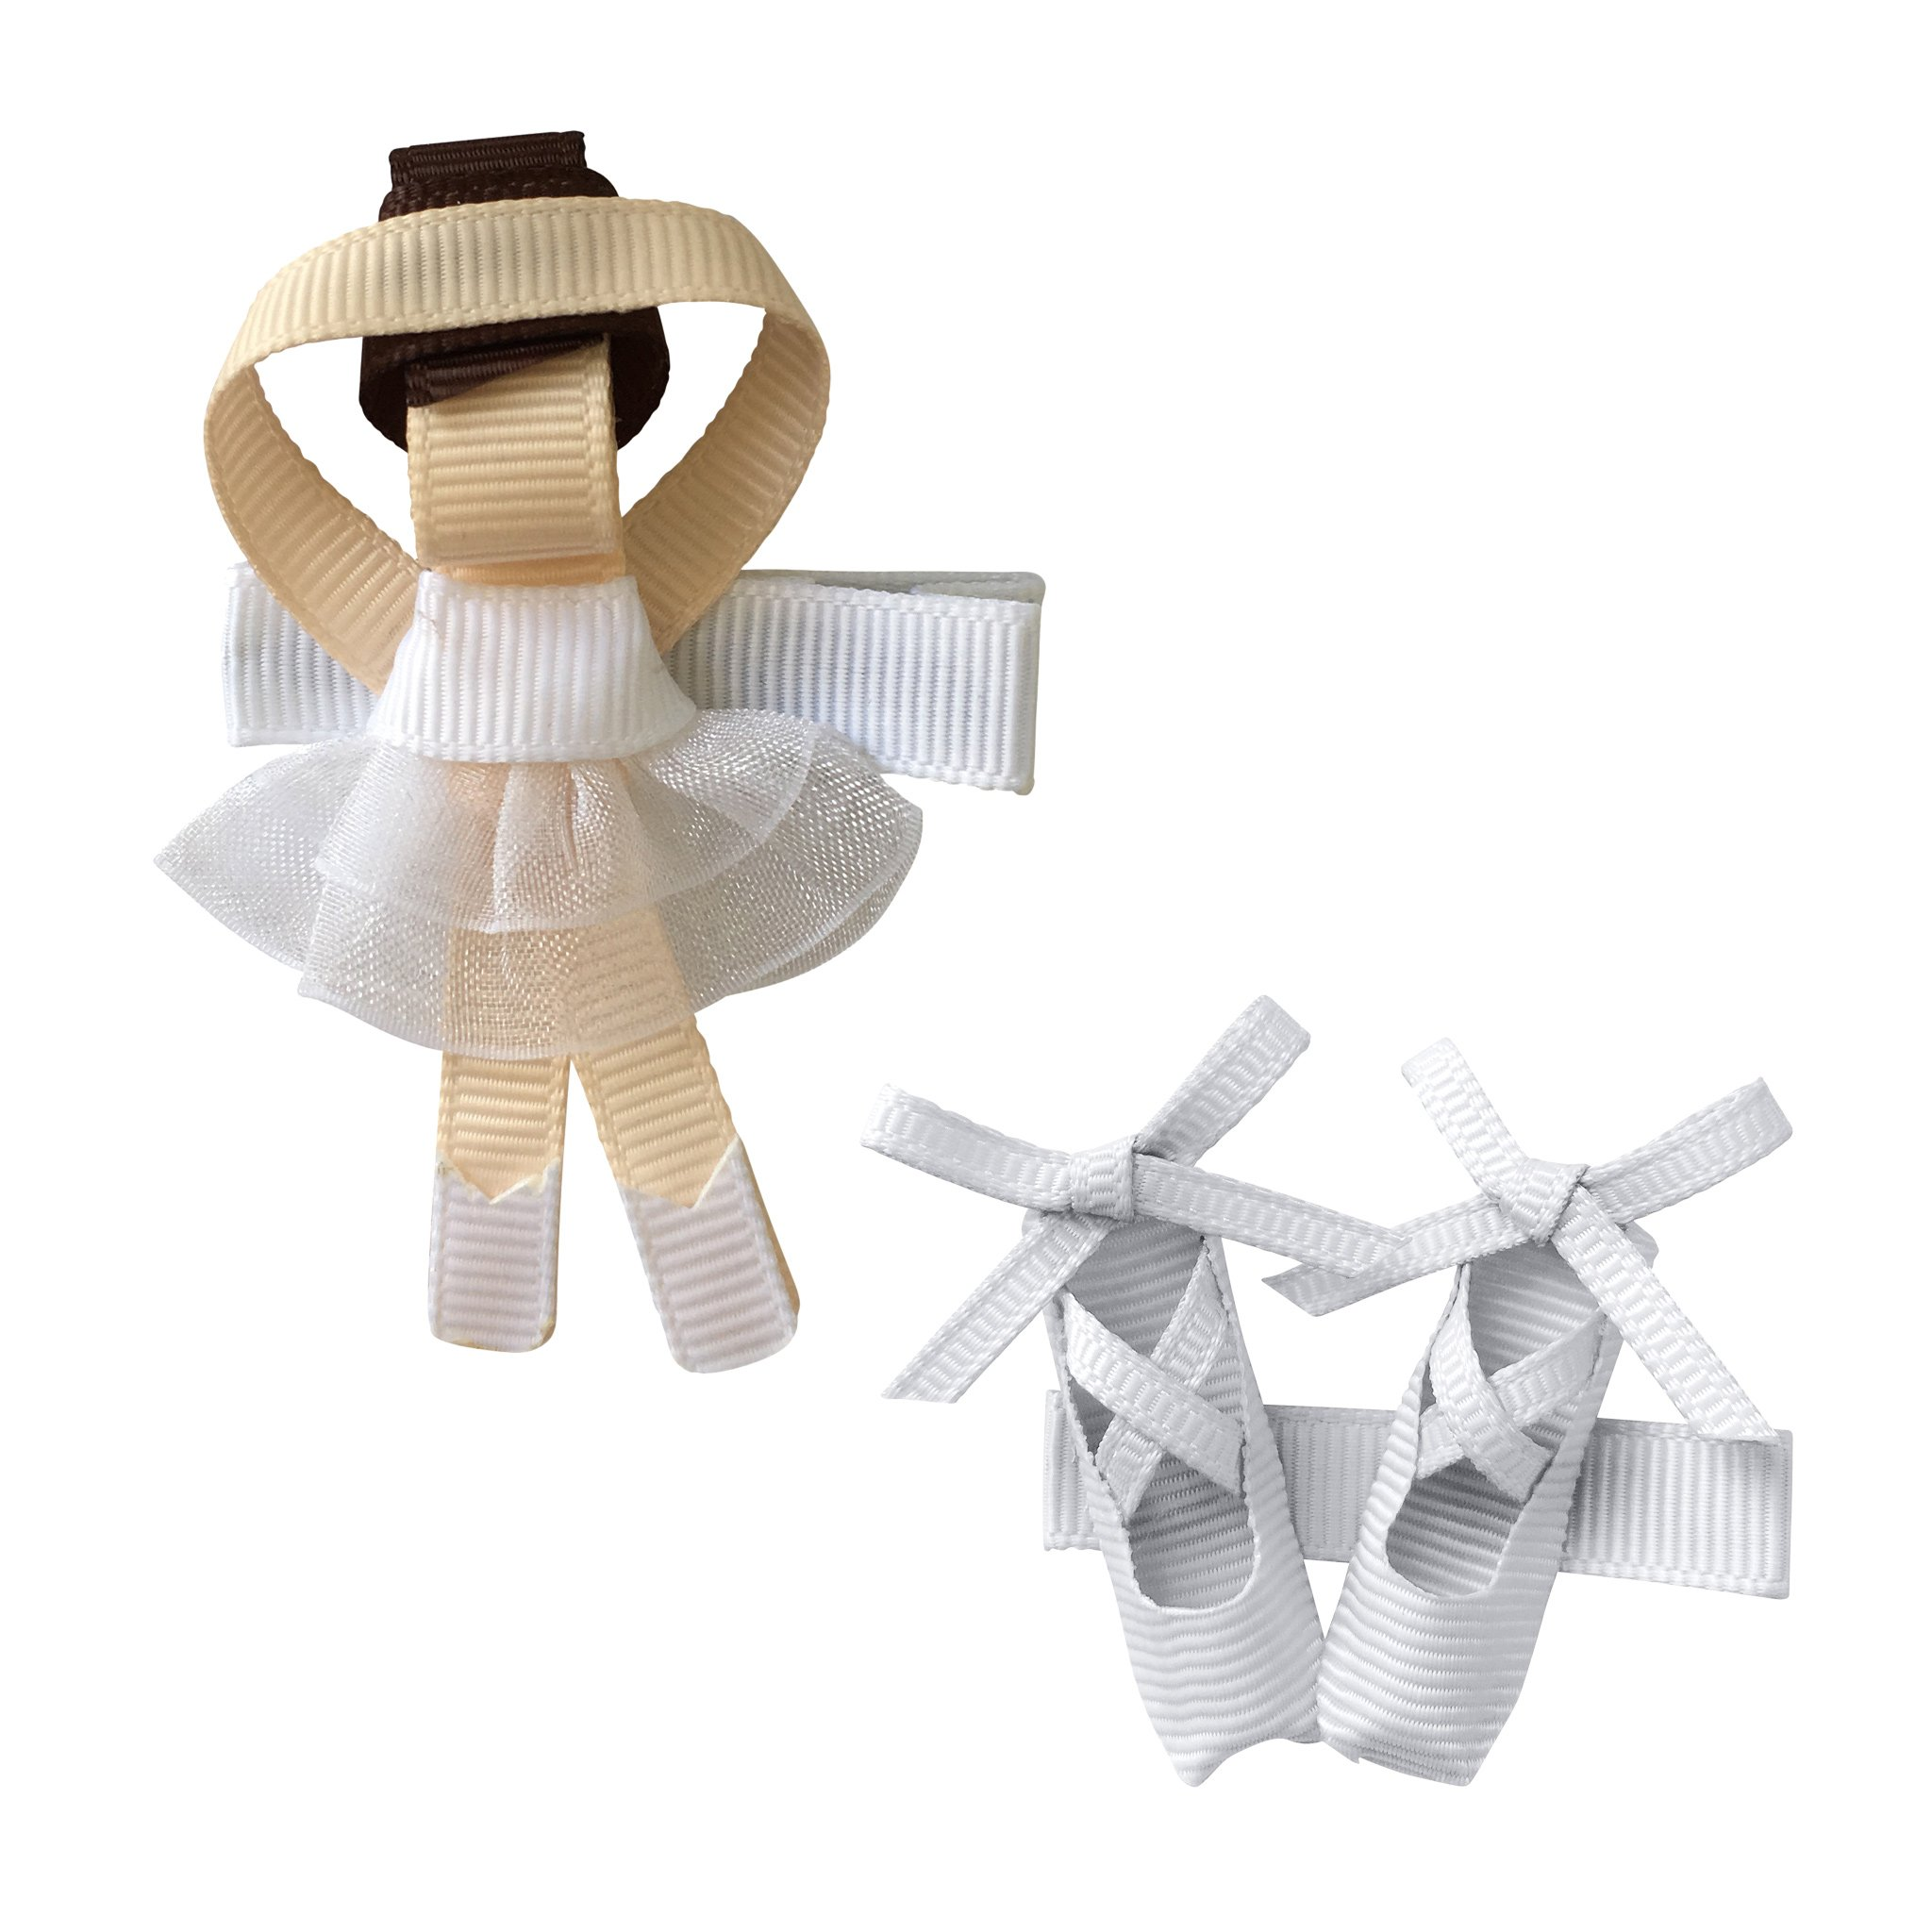 Image of Gift set - Milledeux® Ballerina and shoes - alligator clip - white